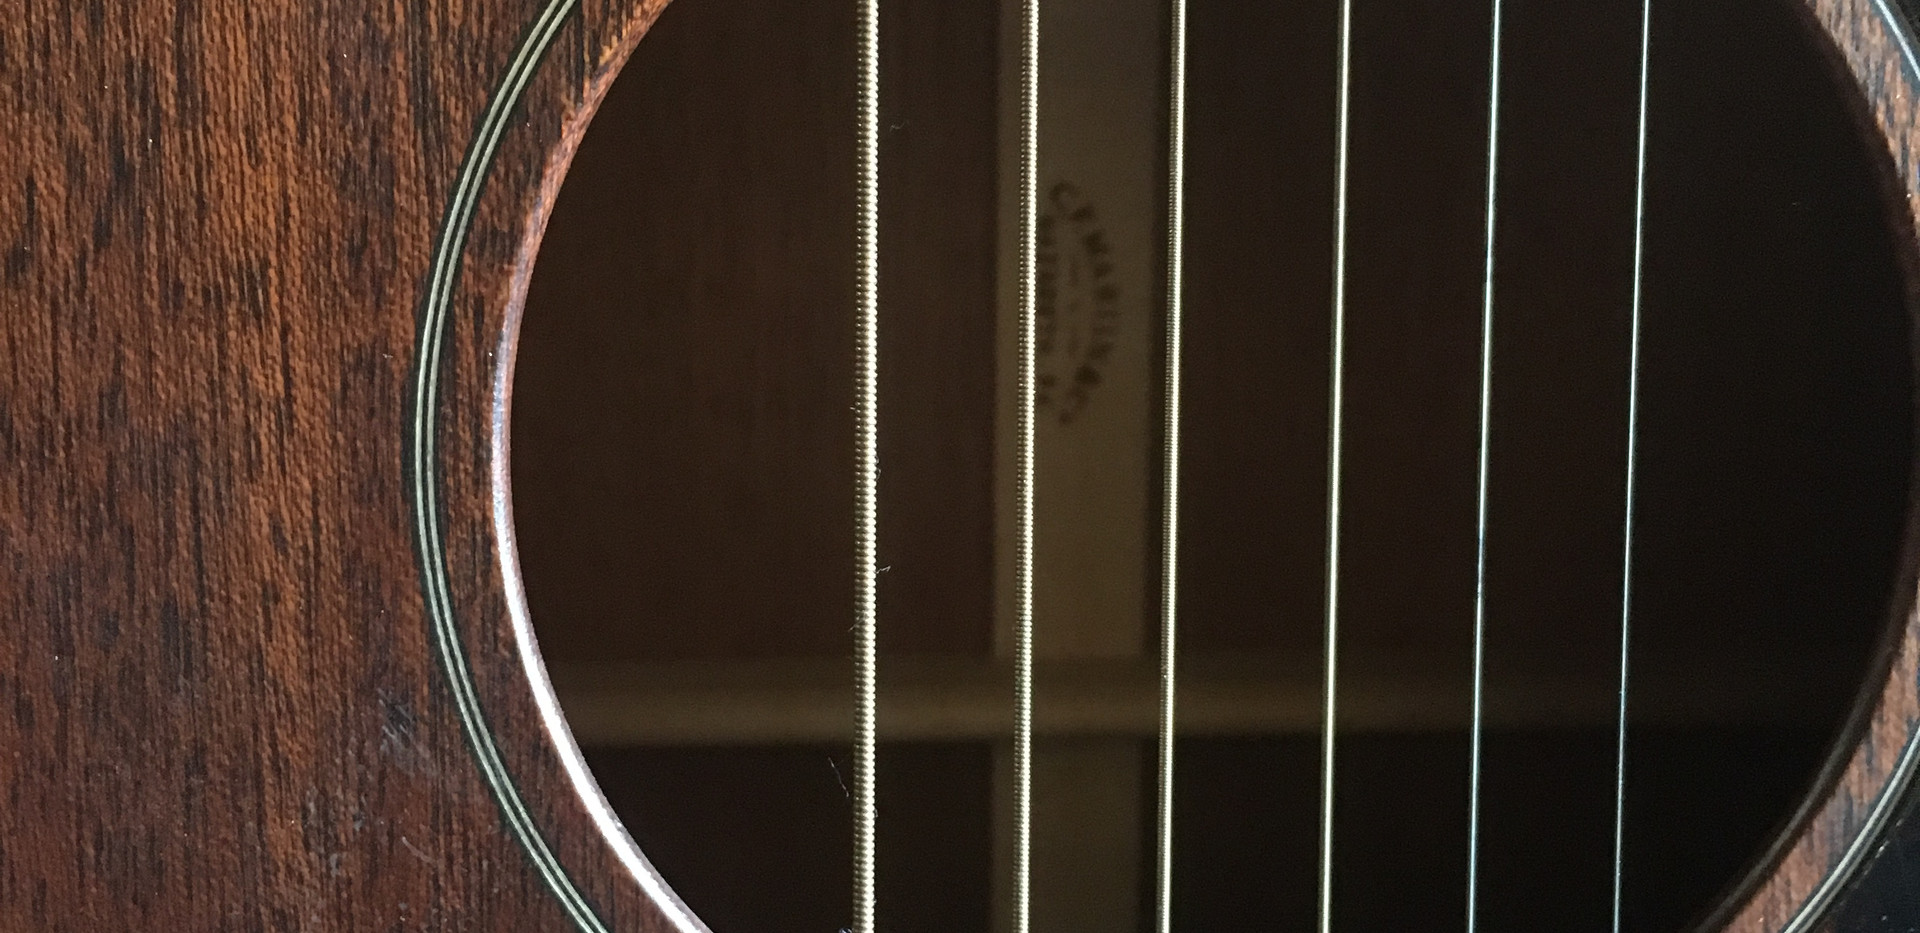 """Originally purchased 2016 Used Martin 00015-M Solid Mahogany Steel string Acoustic  BODY SIZE: 000-14 Fret  FINISH TOP: Satin  CONSTRUCTION: Simple Dovetail Neck Joint  BACK & SIDE FINISH: Satin  BRACING PATTERN: X Brace  SCALE LENGTH: 25.4""""  BRACE SHAPE: Non-Scalloped  FINGERBOARD WIDTH AT NUT: 1 11/16''  TOP MATERIAL: Mahogany  NECK SHAPE: Modified Low Oval  BACK MATERIAL: Mahogany  NECK TAPER: Standard Taper  SIDE MATERIAL: Mahogany  Hardshell case included  Price: $900.00"""